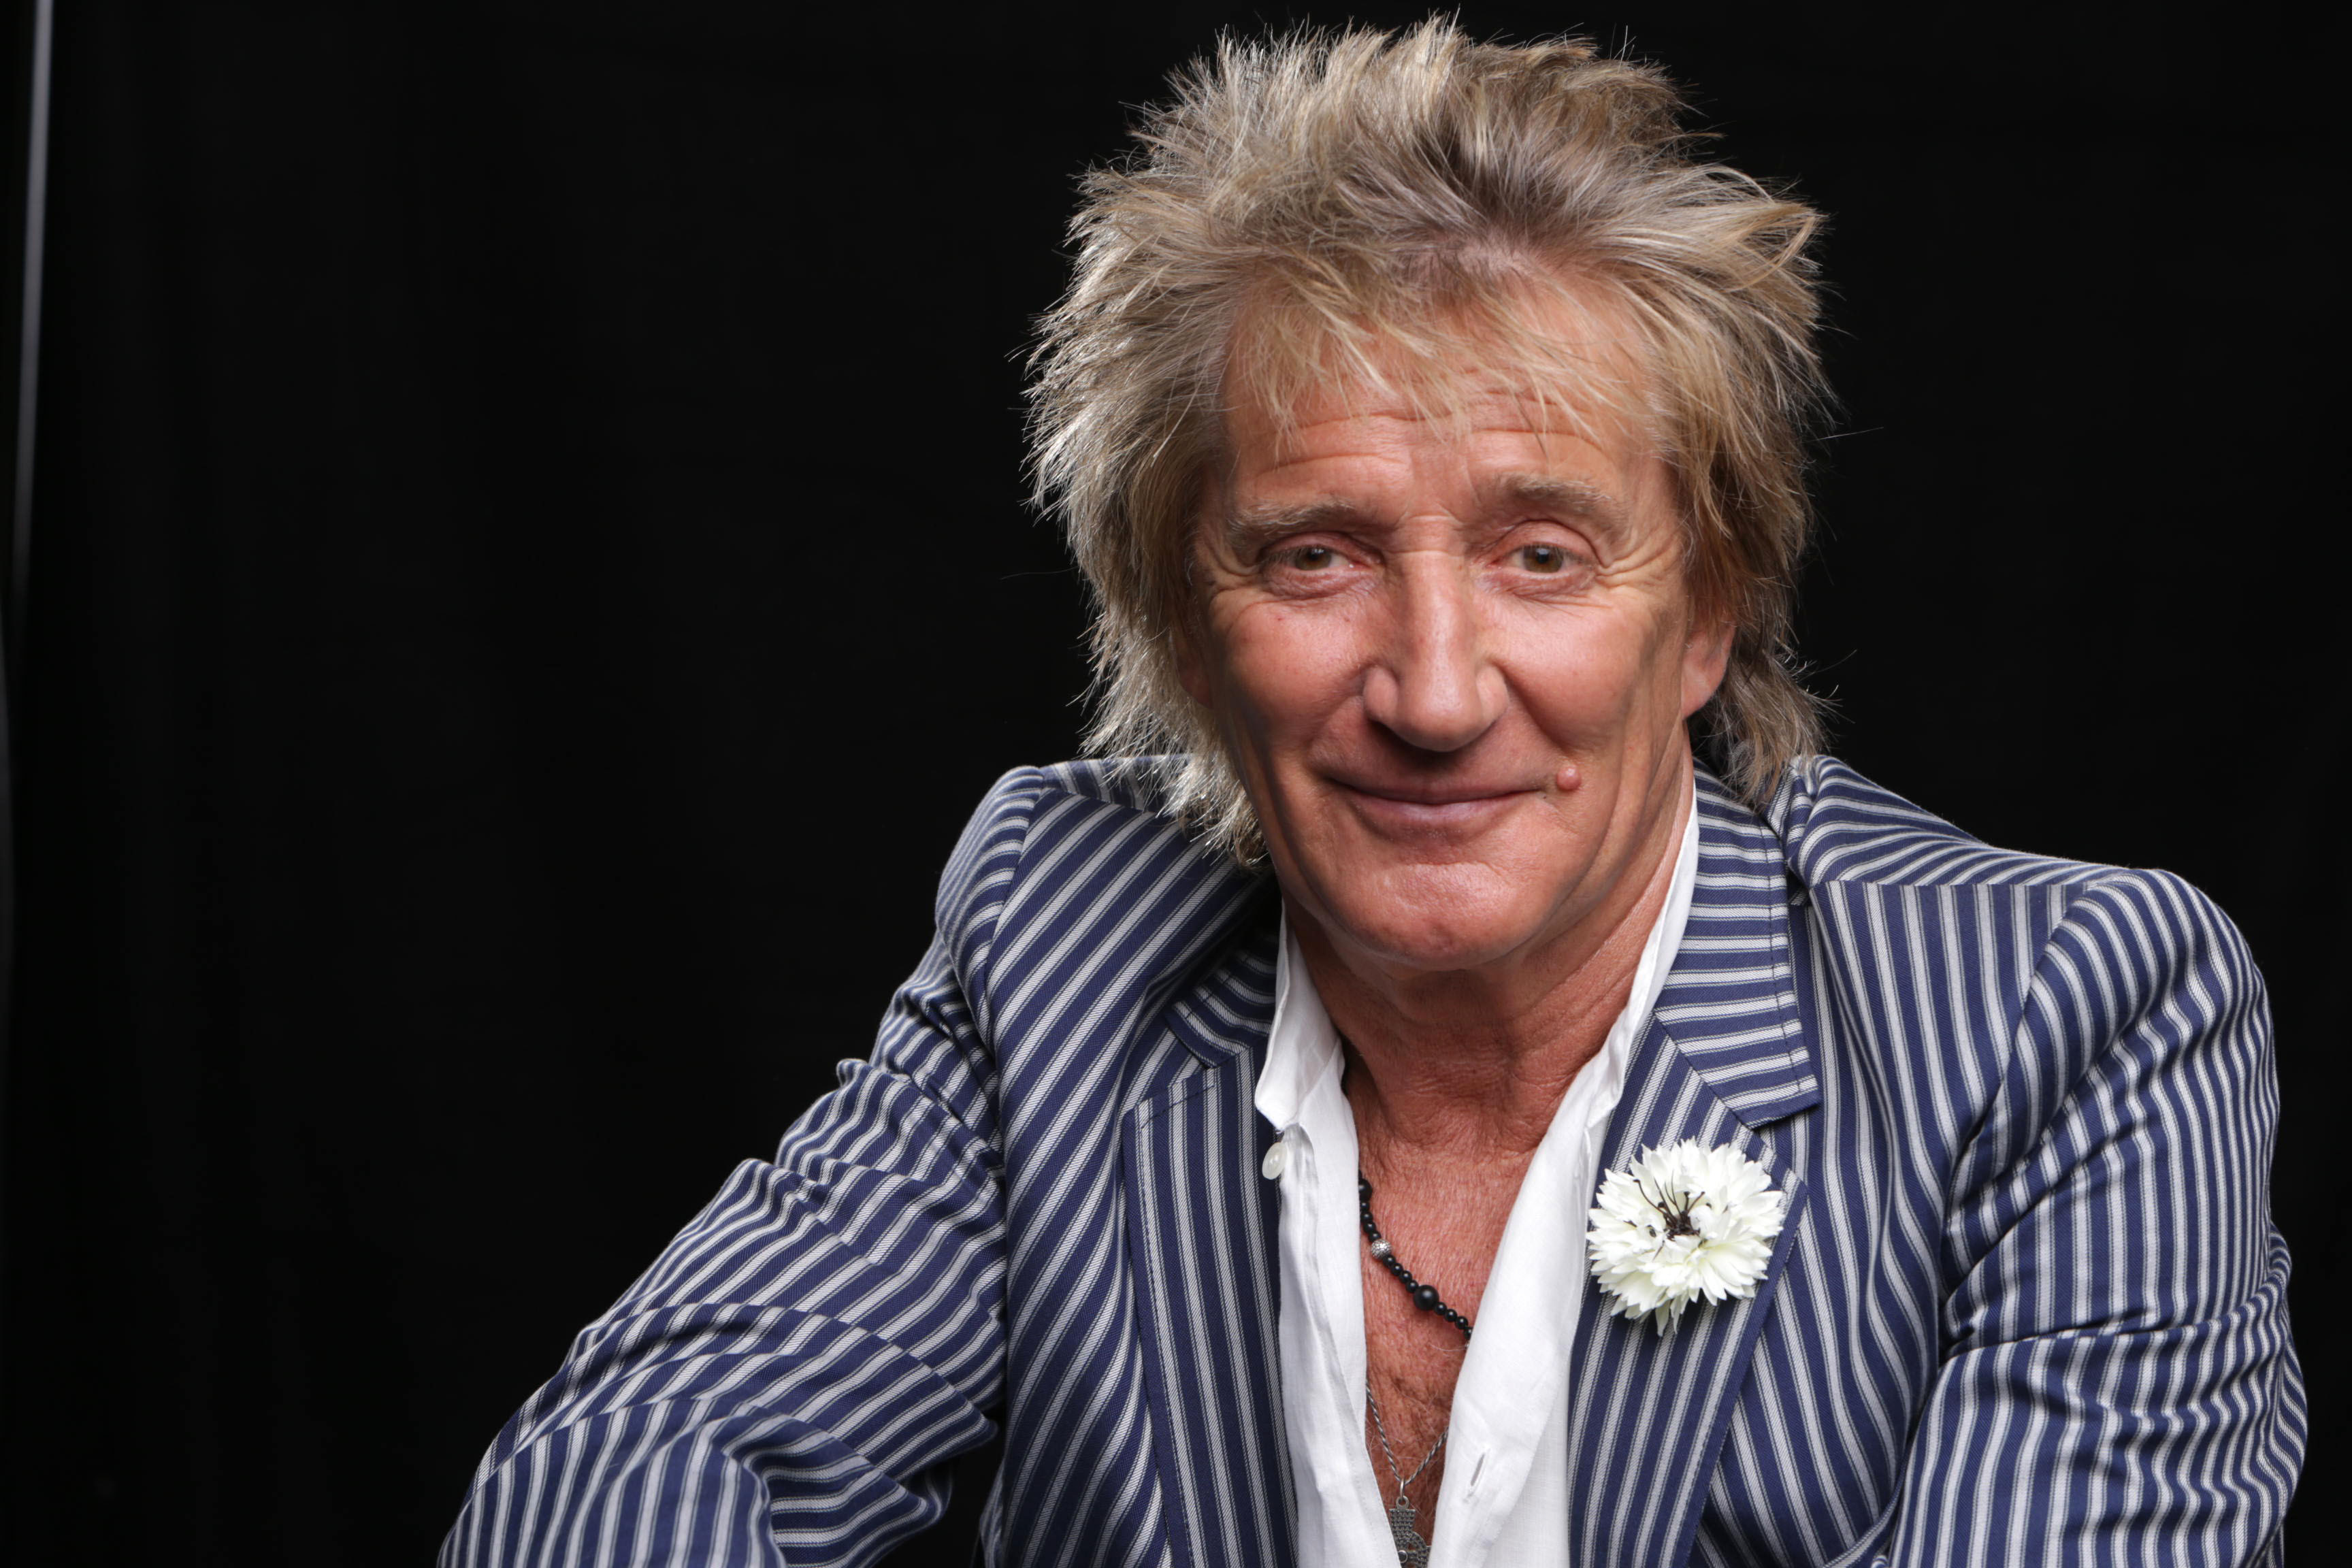 2013-07-25-RODSTEWART_original.jpg